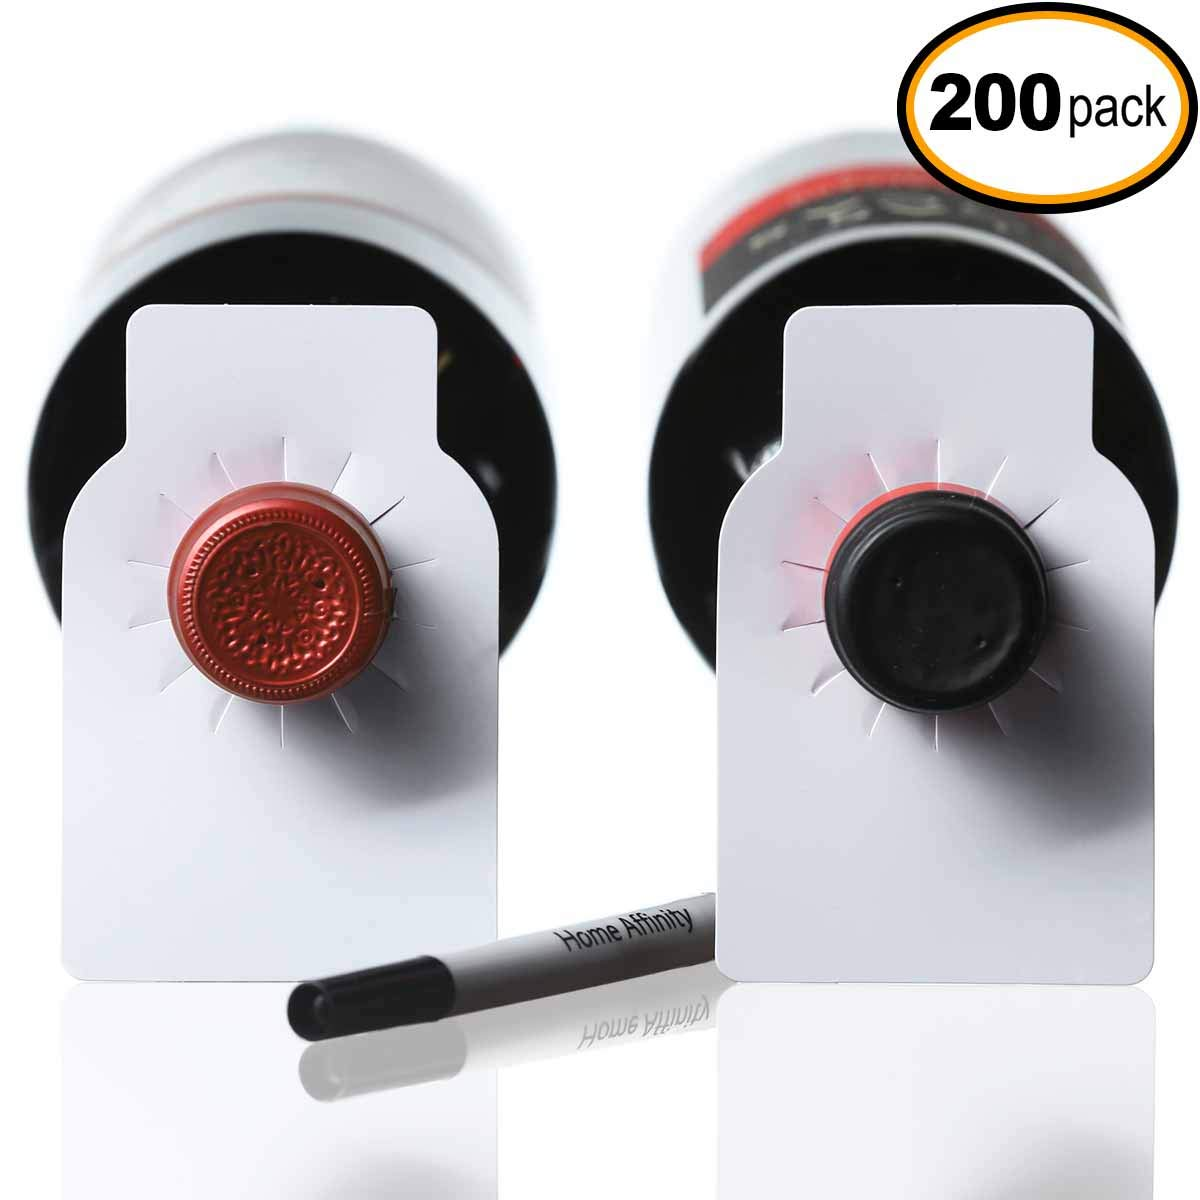 Plastic Reusable Wine Bottle Tags - 200 Count Plain Plastic Wine Cellar Labels by Home Affinity (White)